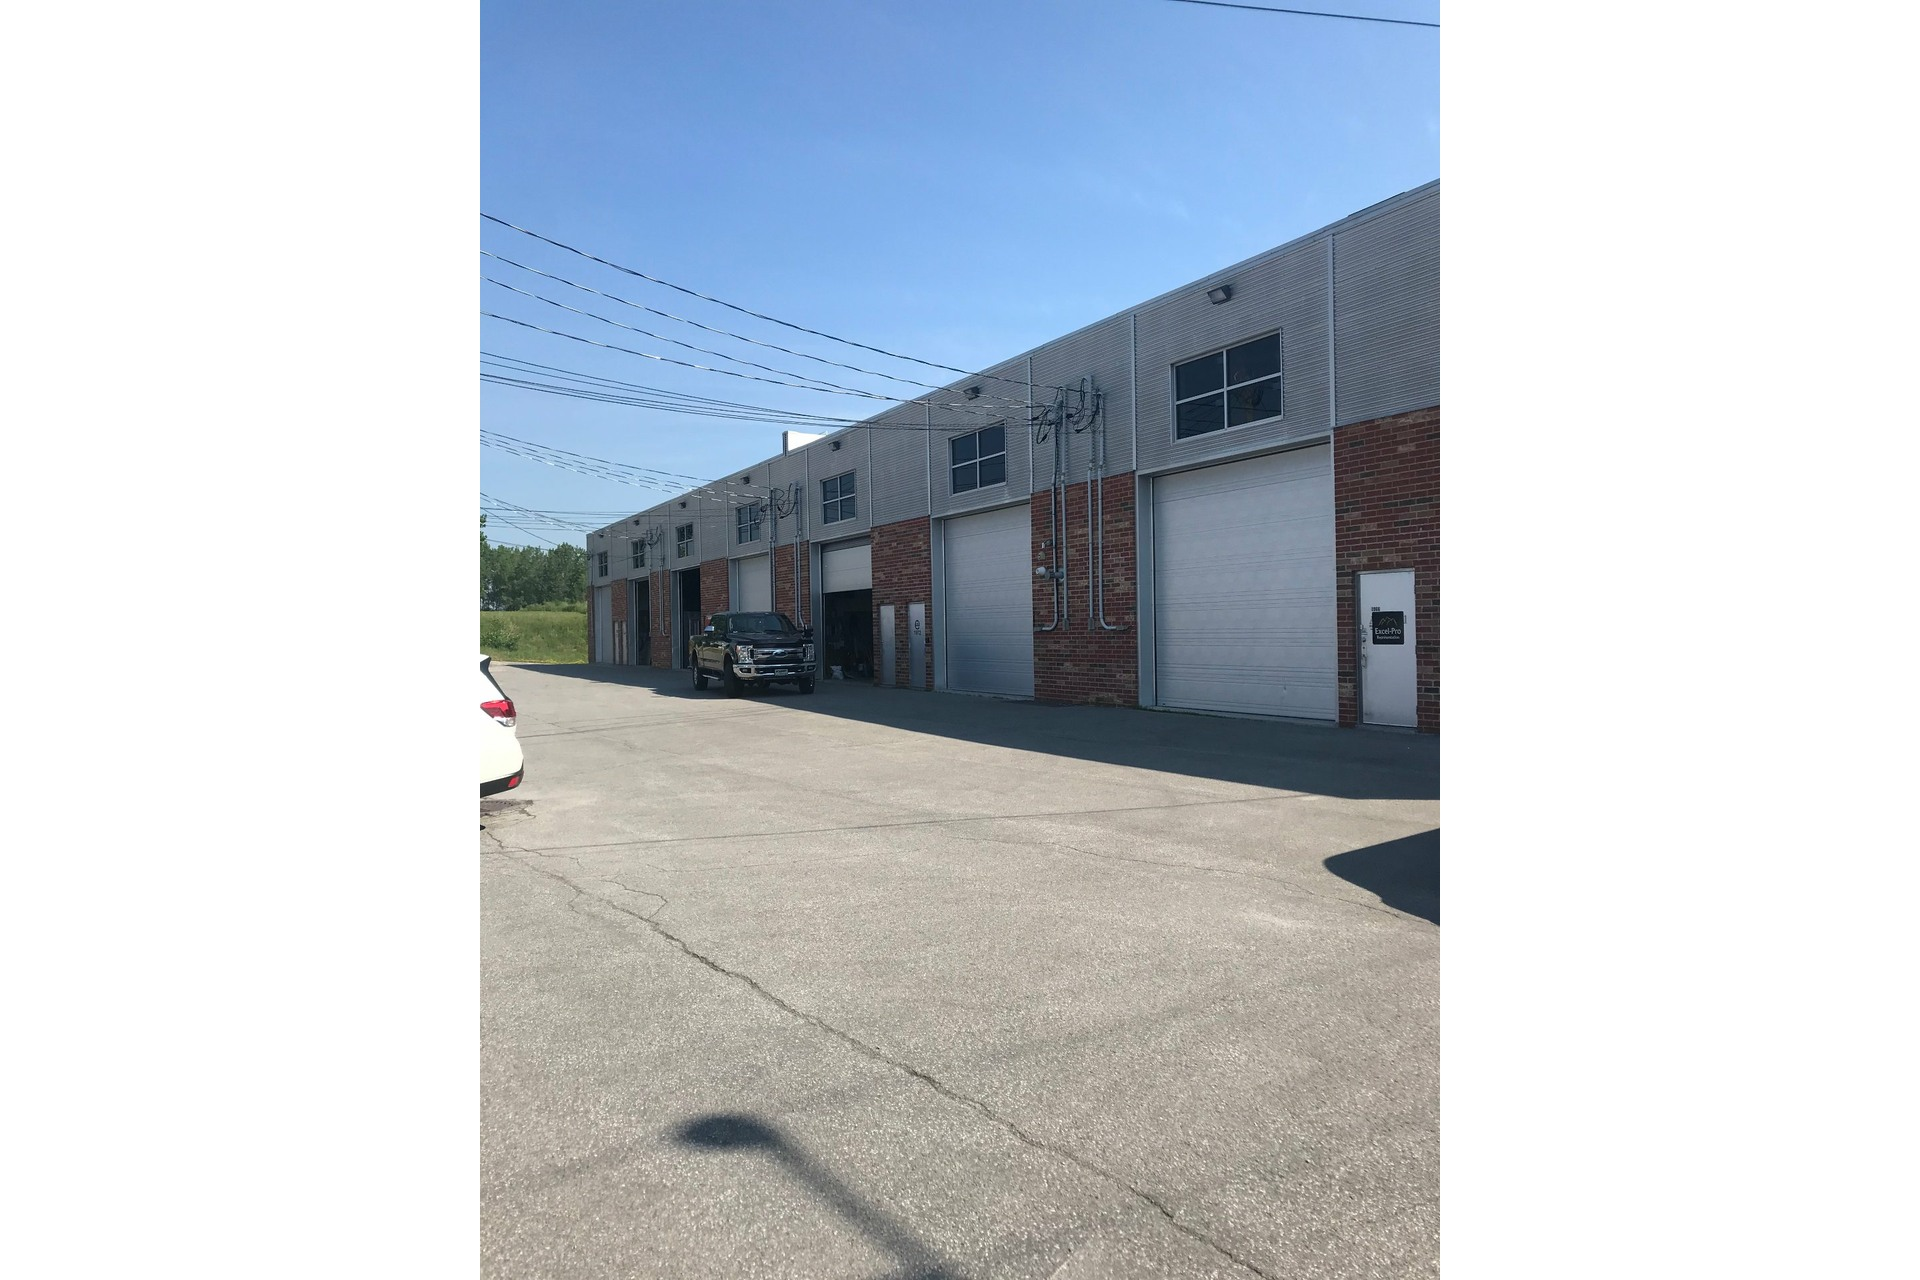 image 4 - Warehouse For sale Duvernay Laval